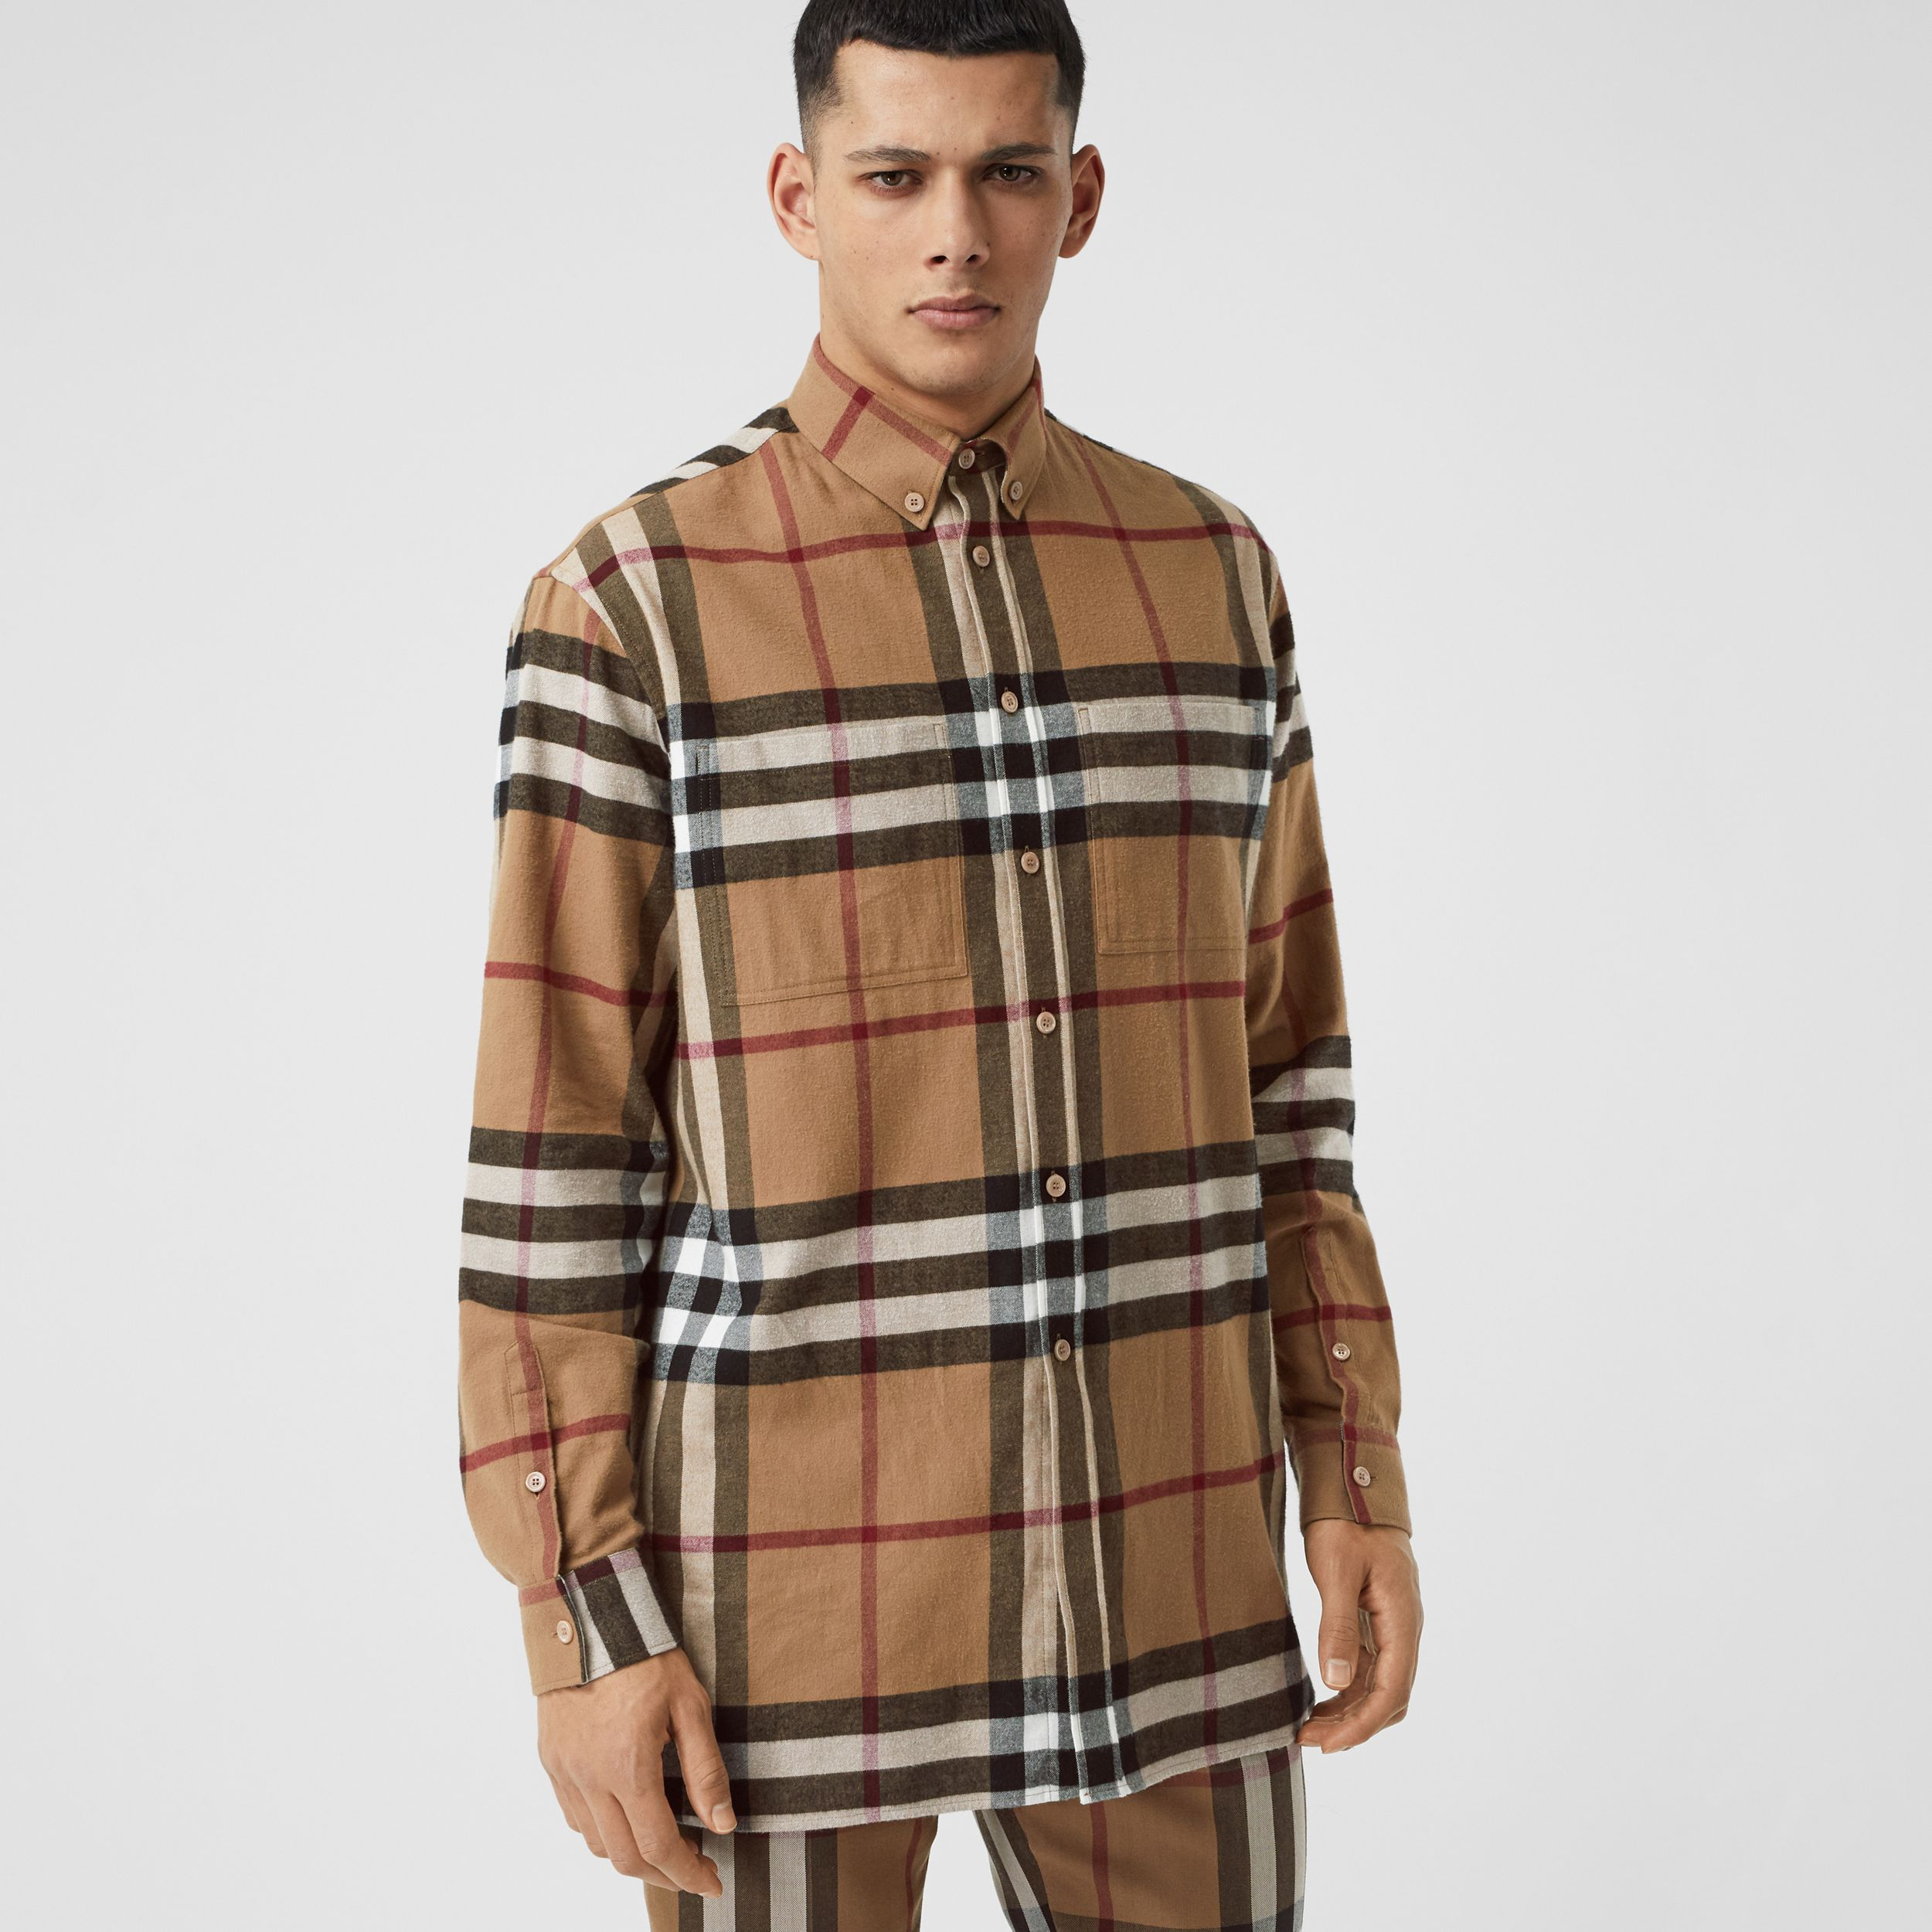 Relaxed Fit House Check Cotton Flannel Shirt in Birch Brown | Burberry Canada - 1